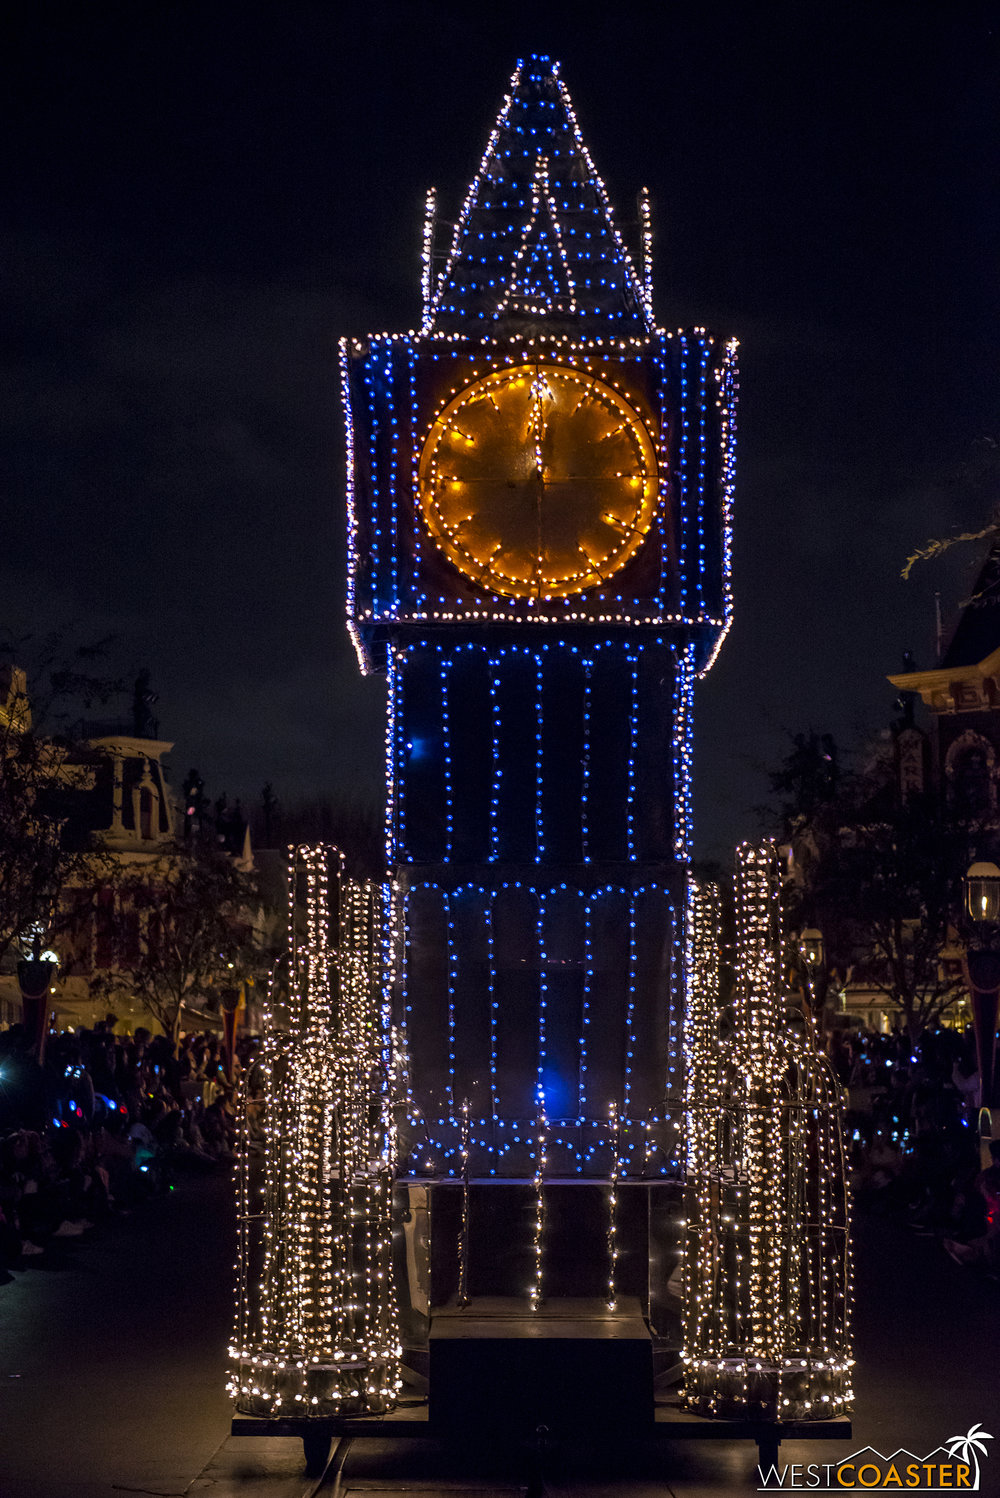 Onto Peter Pan, with a Big Ben float.